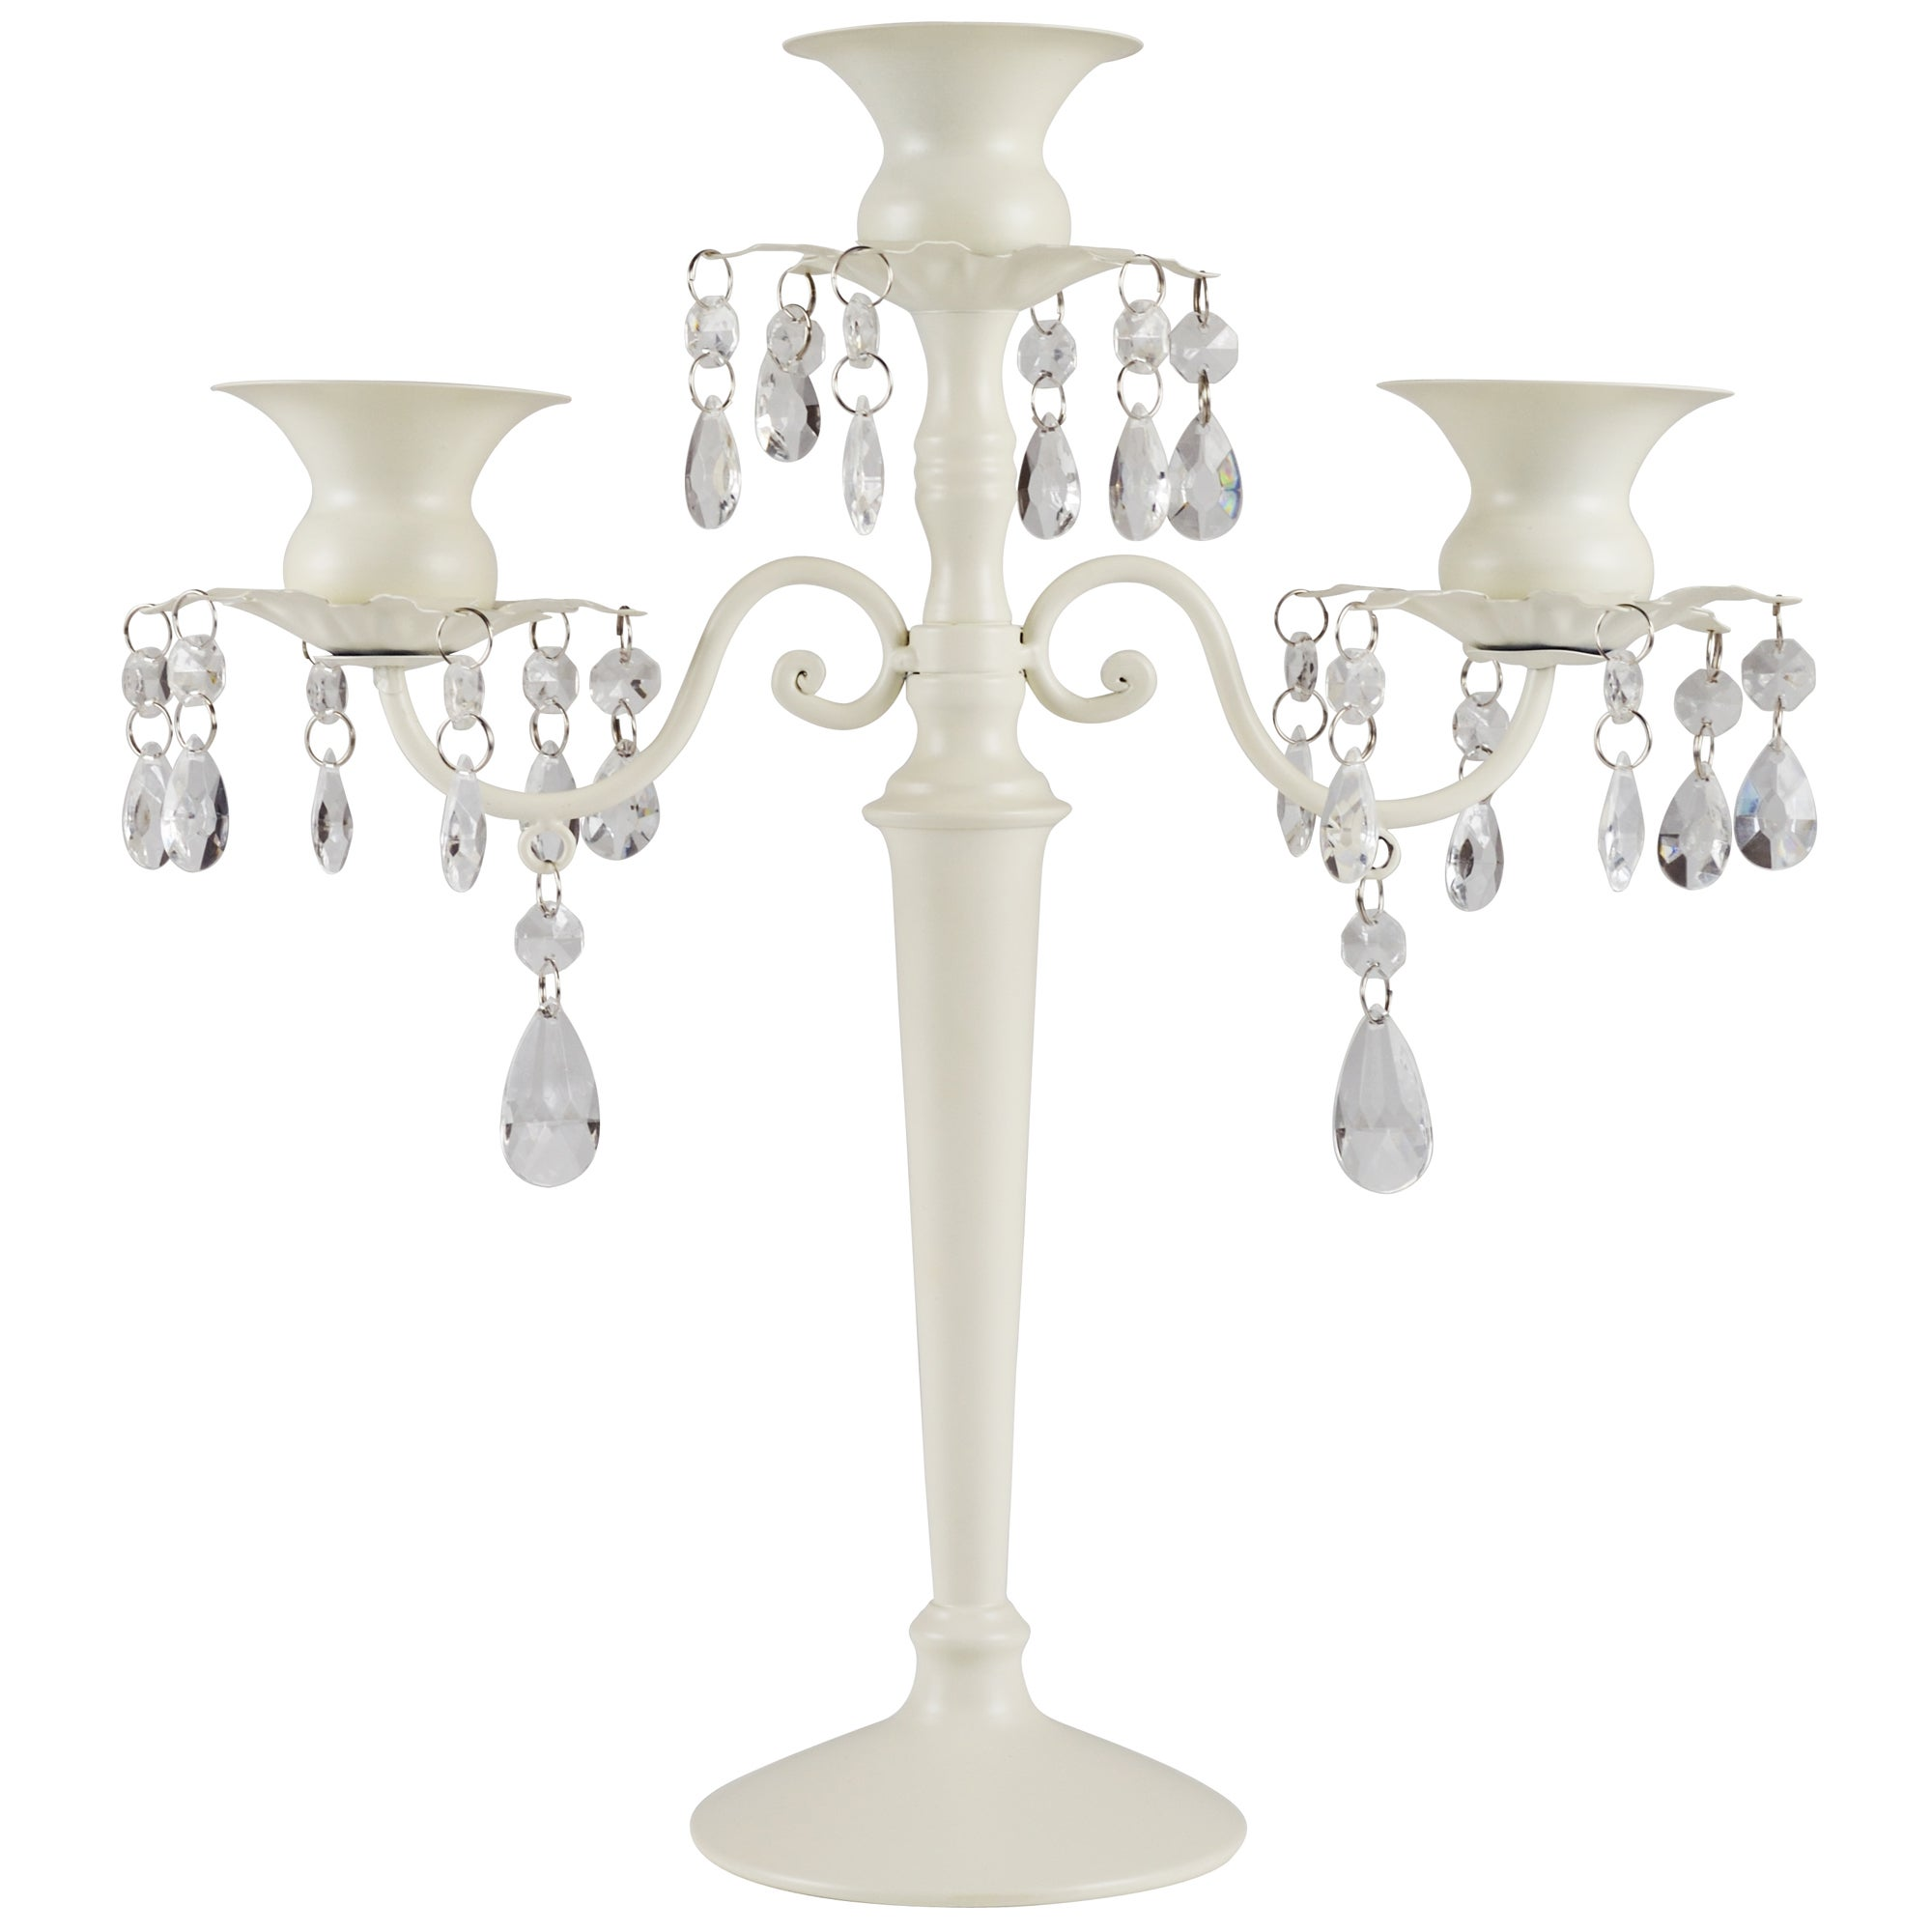 Image of 3 Arm Jewelled Candelabra Cream